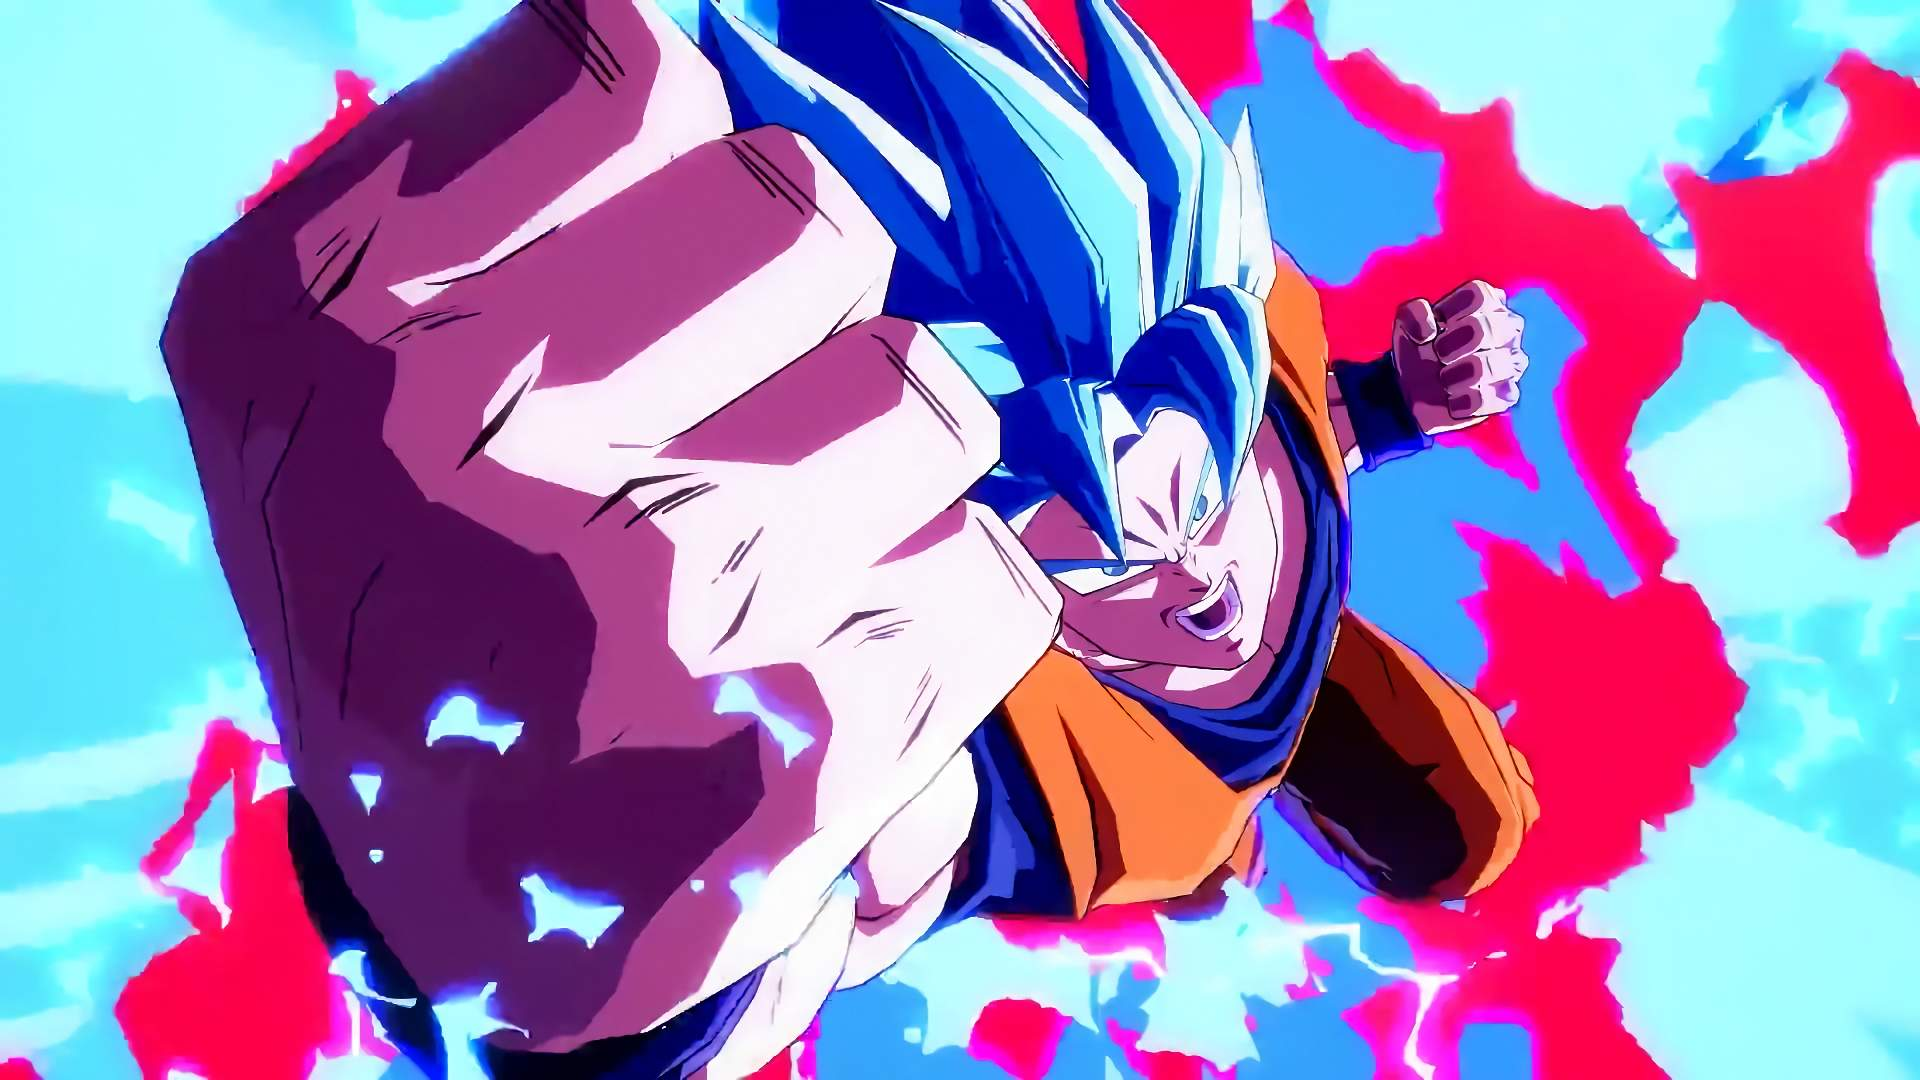 Dragon Ball Super Chapter 60 Release Date, Spoilers Goku and Vegeta vs Moro Fight Confirmed